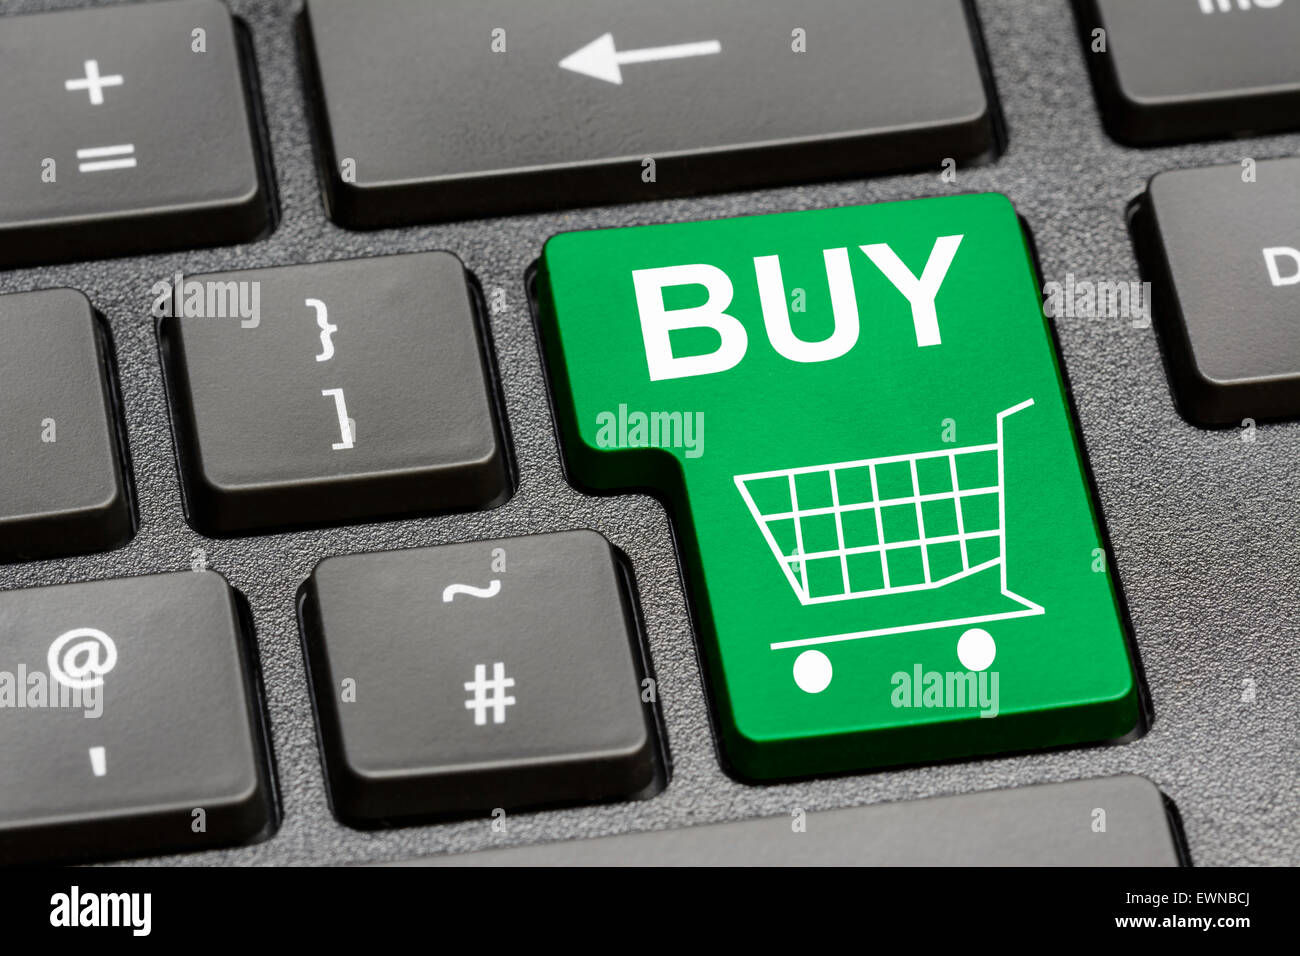 Computer keyboard with a Buy button for online shopping on the Internet. - Stock Image